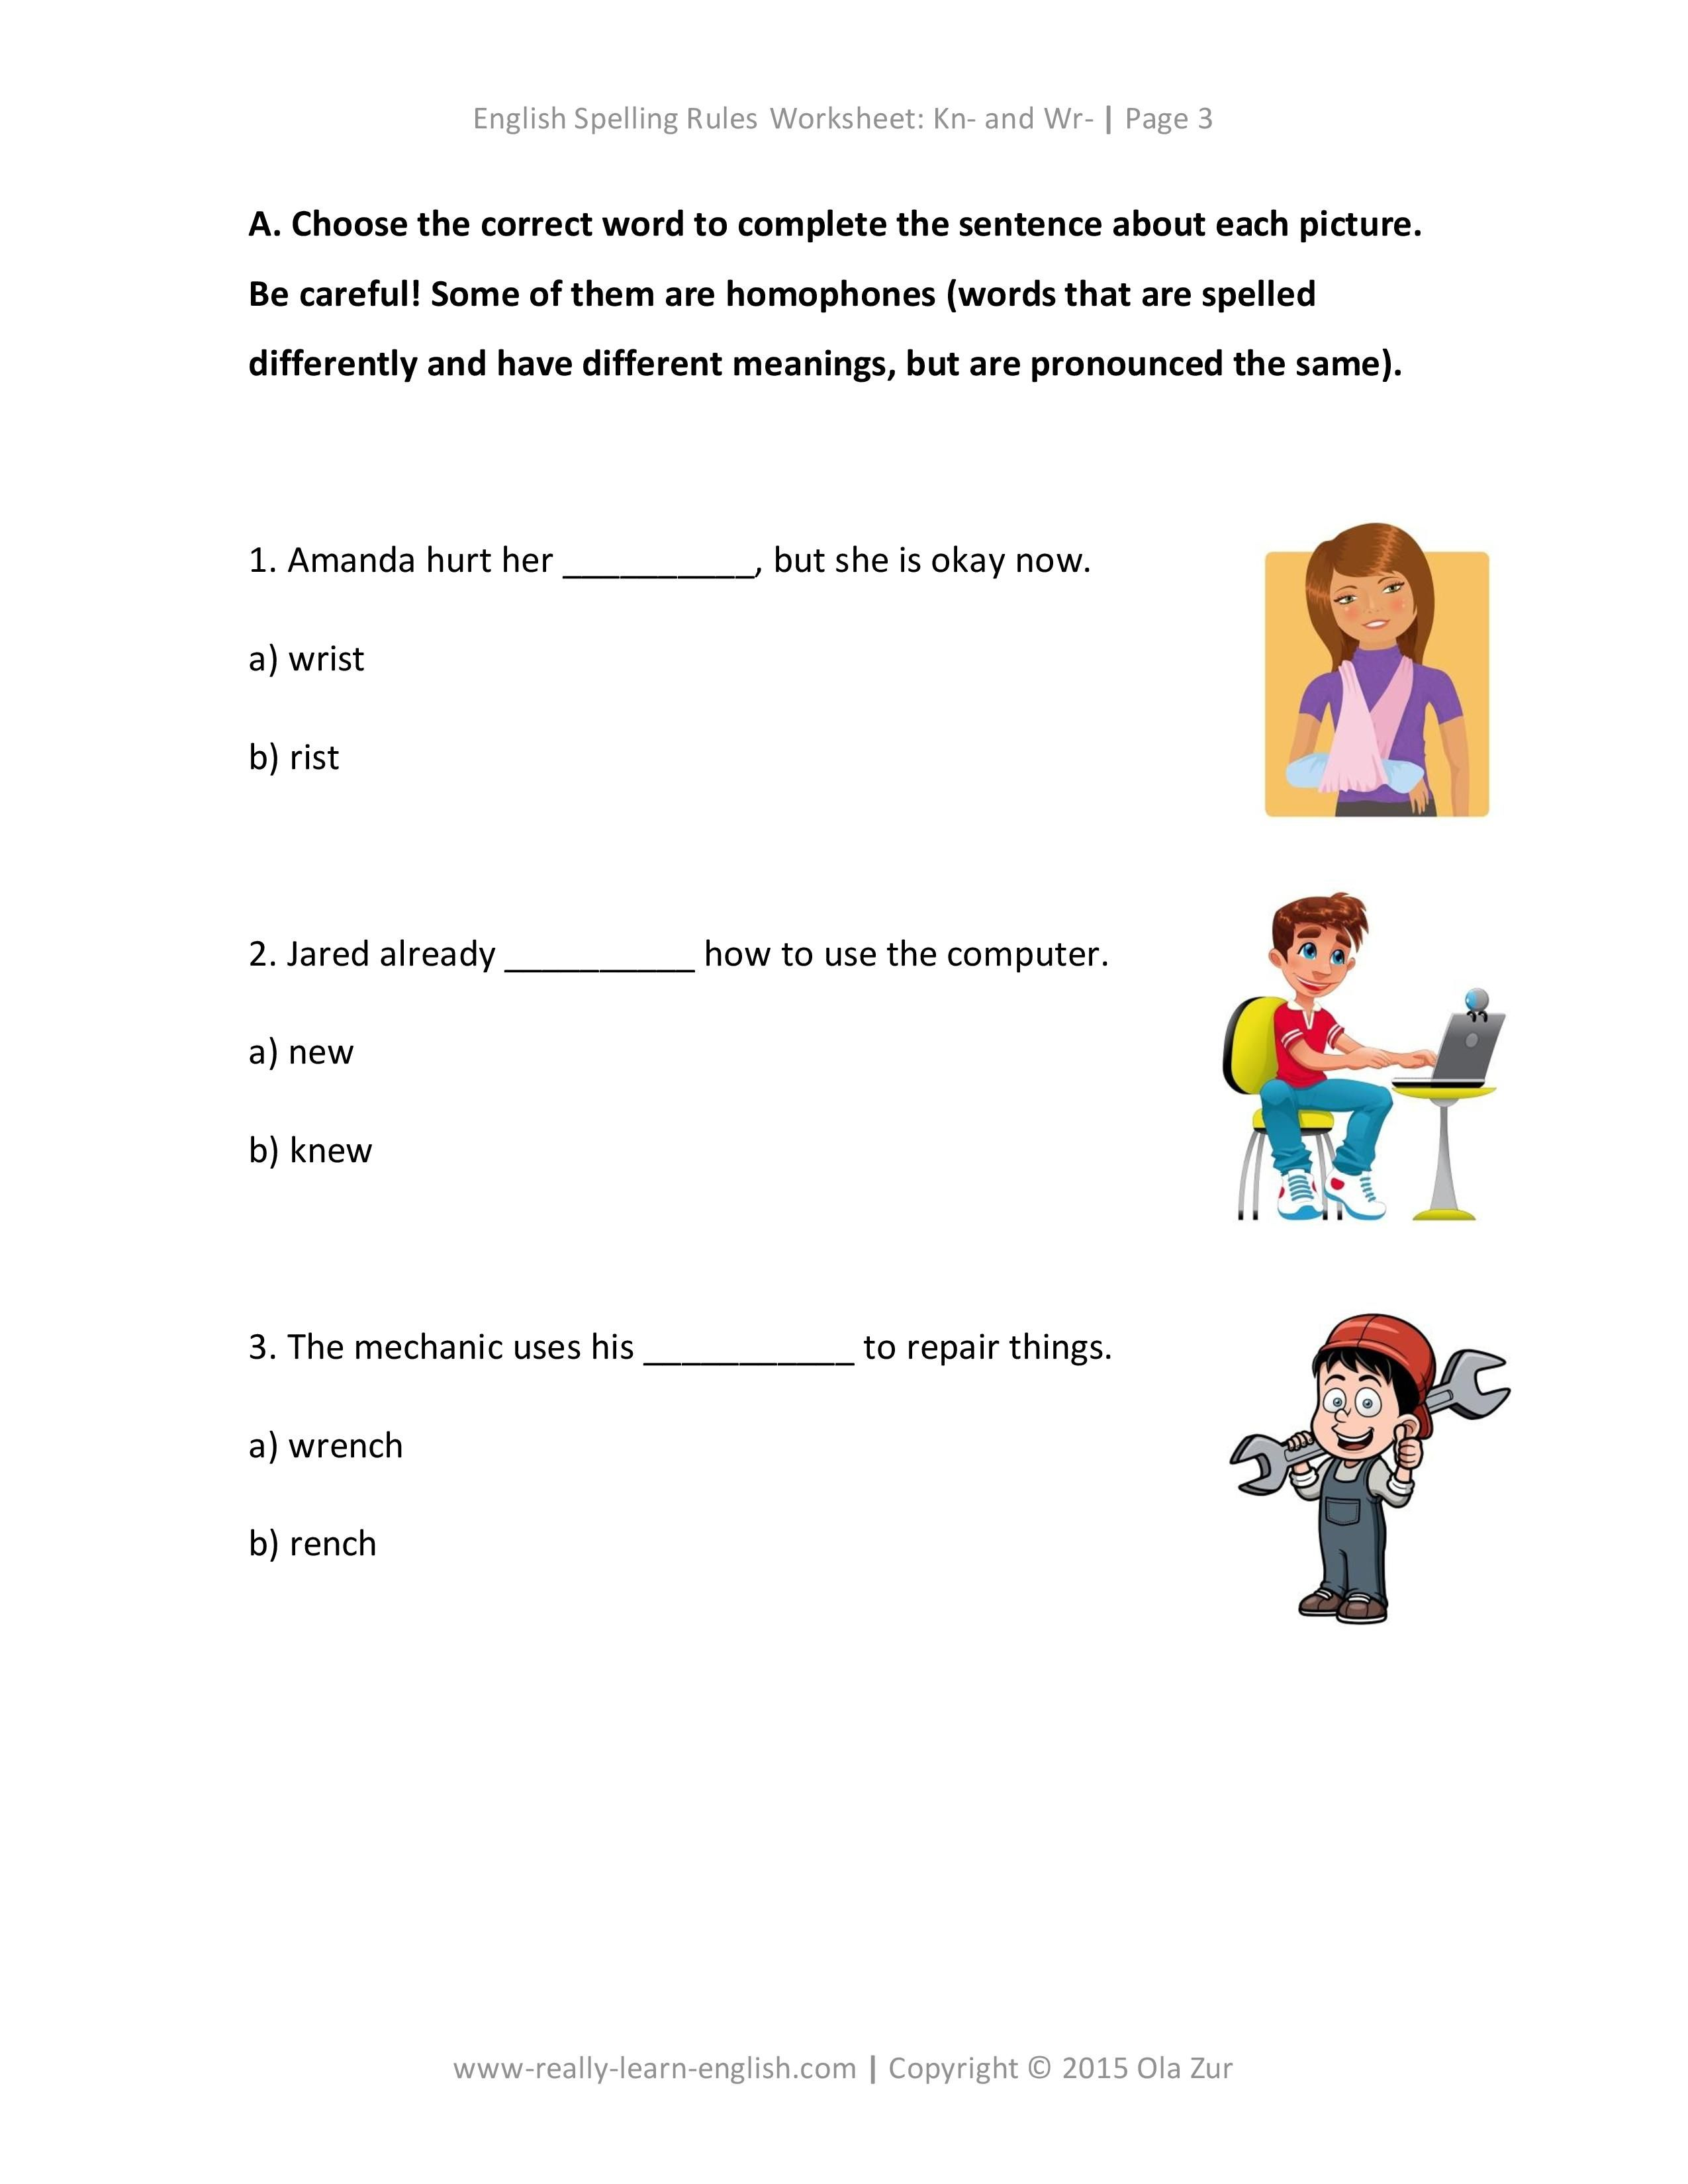 English Spelling Rules and Printable Worksheet for Kn and